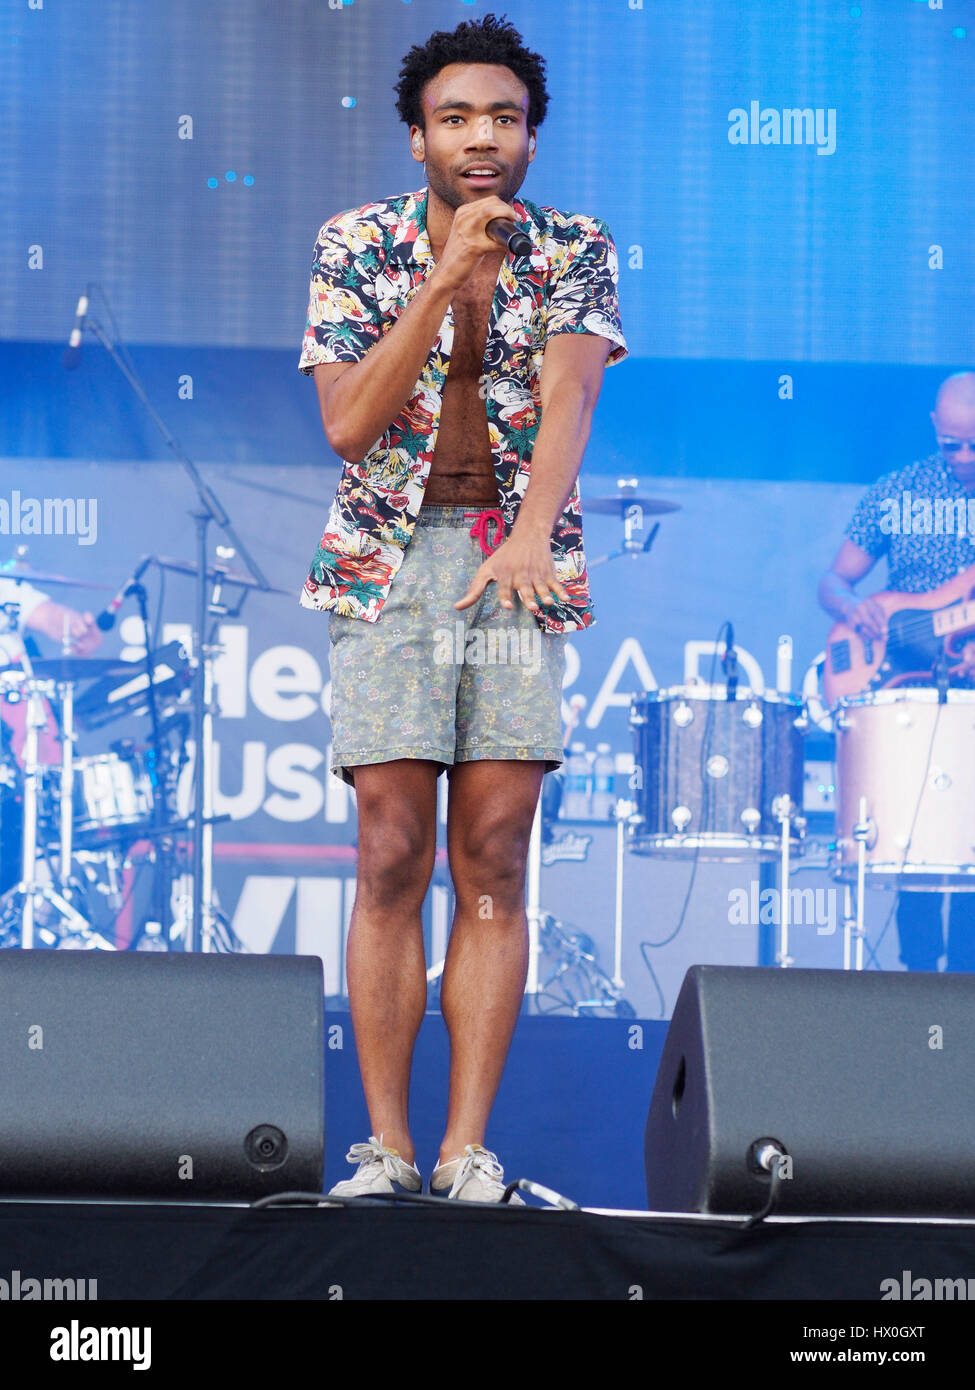 Childish Gambino aka Donald Glover performs at the the iHeartRadio Music Festival & Village on September 20, - Stock Image